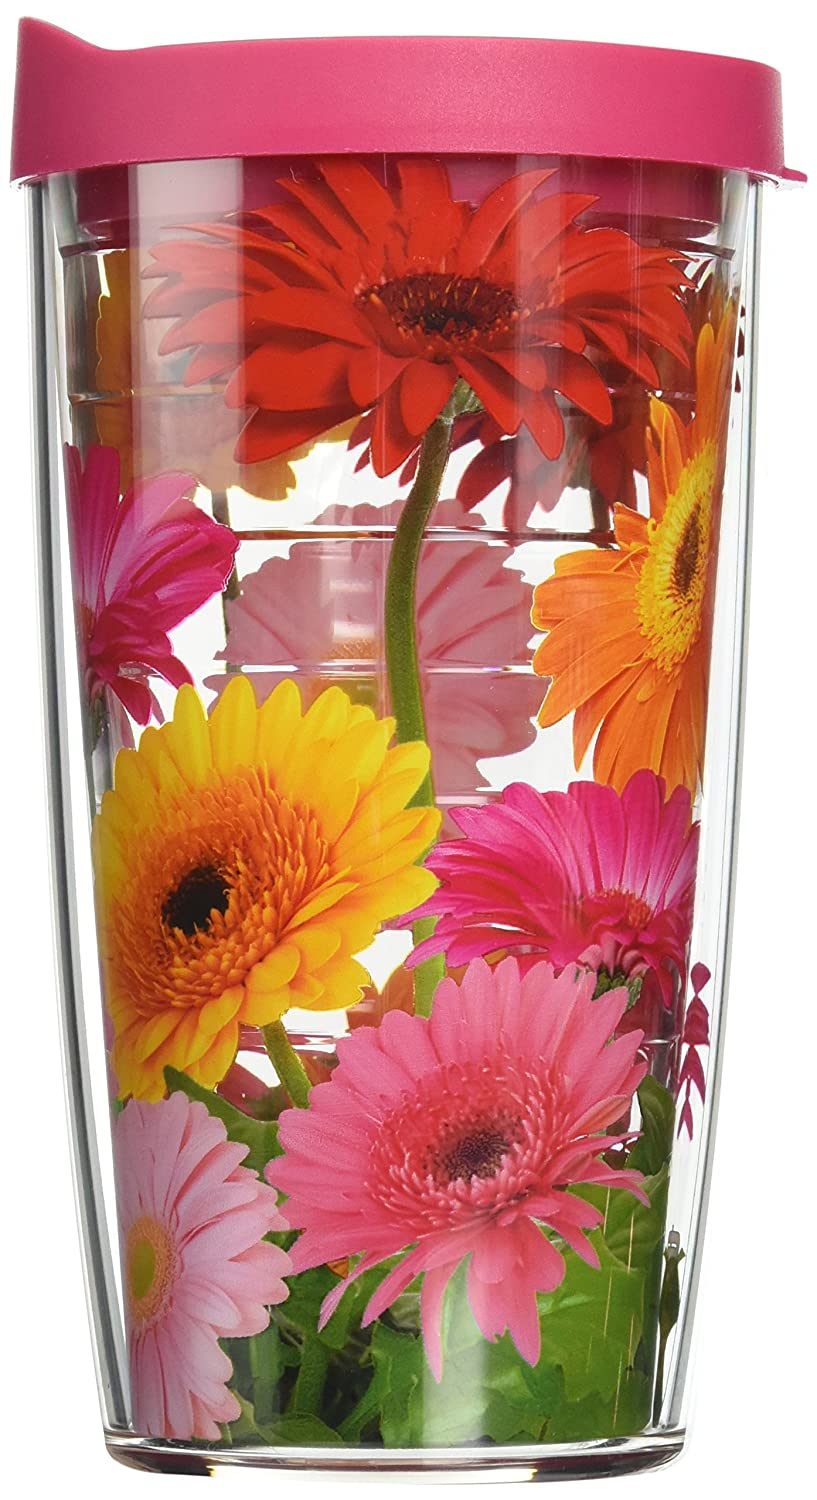 Amazon tervis 1076394 gerbera daisies tumbler with wrap and amazon tervis 1076394 gerbera daisies tumbler with wrap and fuchsia lid 16oz clear kitchen dining izmirmasajfo